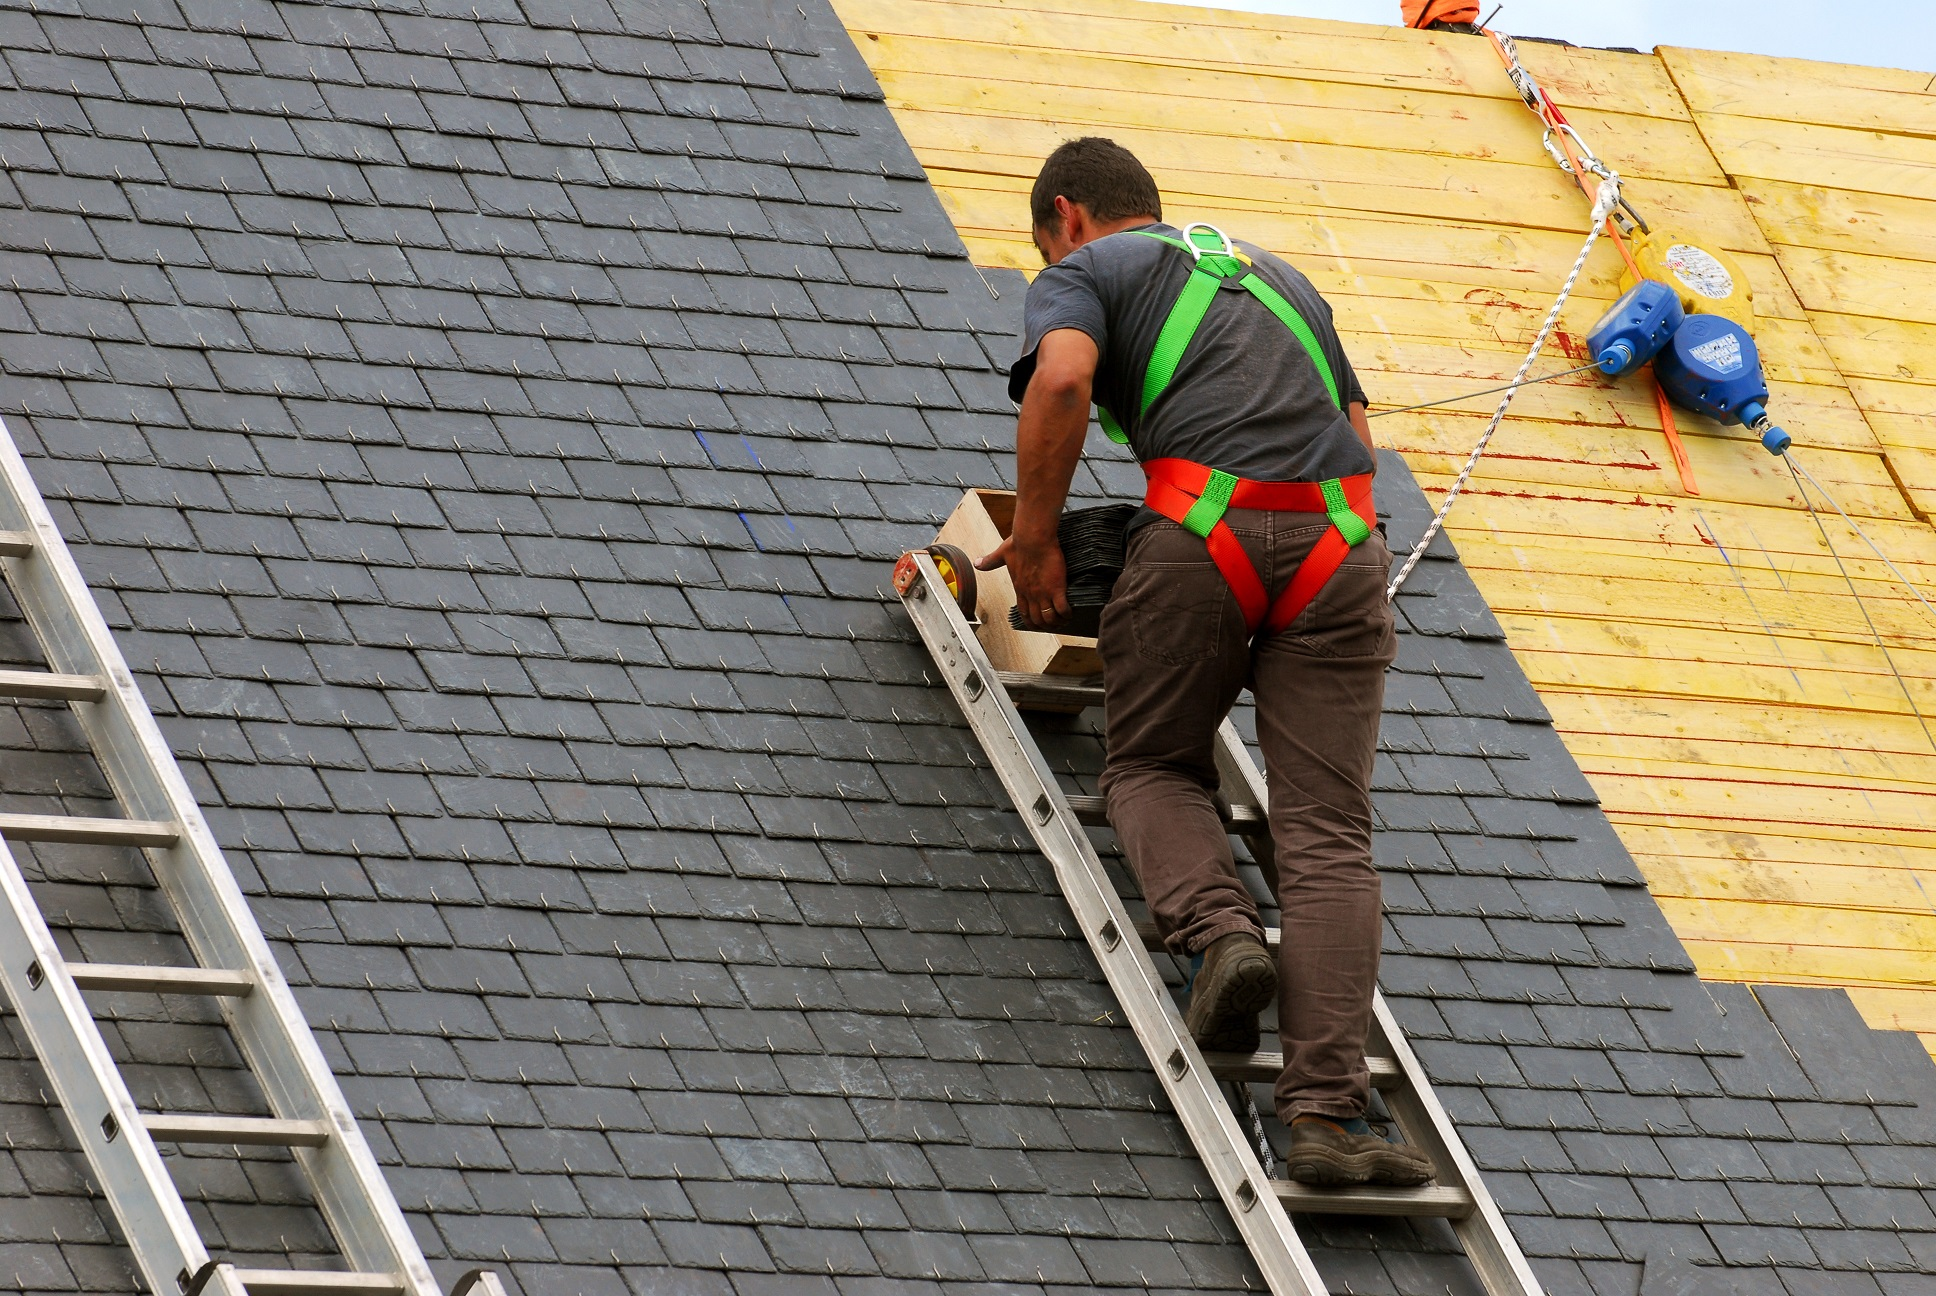 Quality Roofs Pvt Ltd, Roofing Contractors In Chennai, Metal Roofing Contractors In Chennai, Roofing Contractors In Chennai, Metal Roofing Contractors In Chennai,  metal roofing contractors in anna nagar,